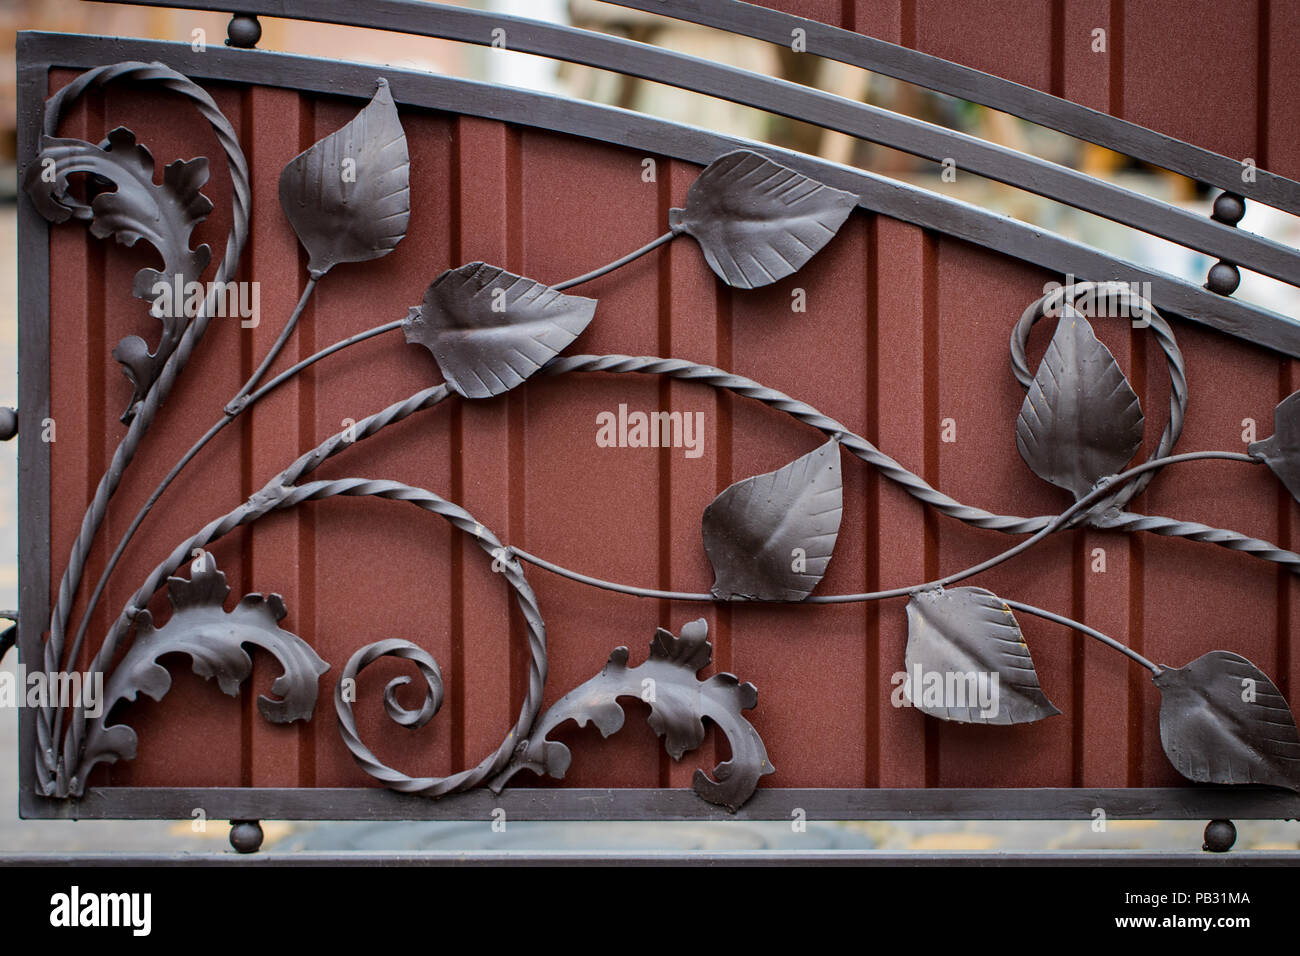 ornate wrought-iron elements of metal gate decoration. Stock Photo